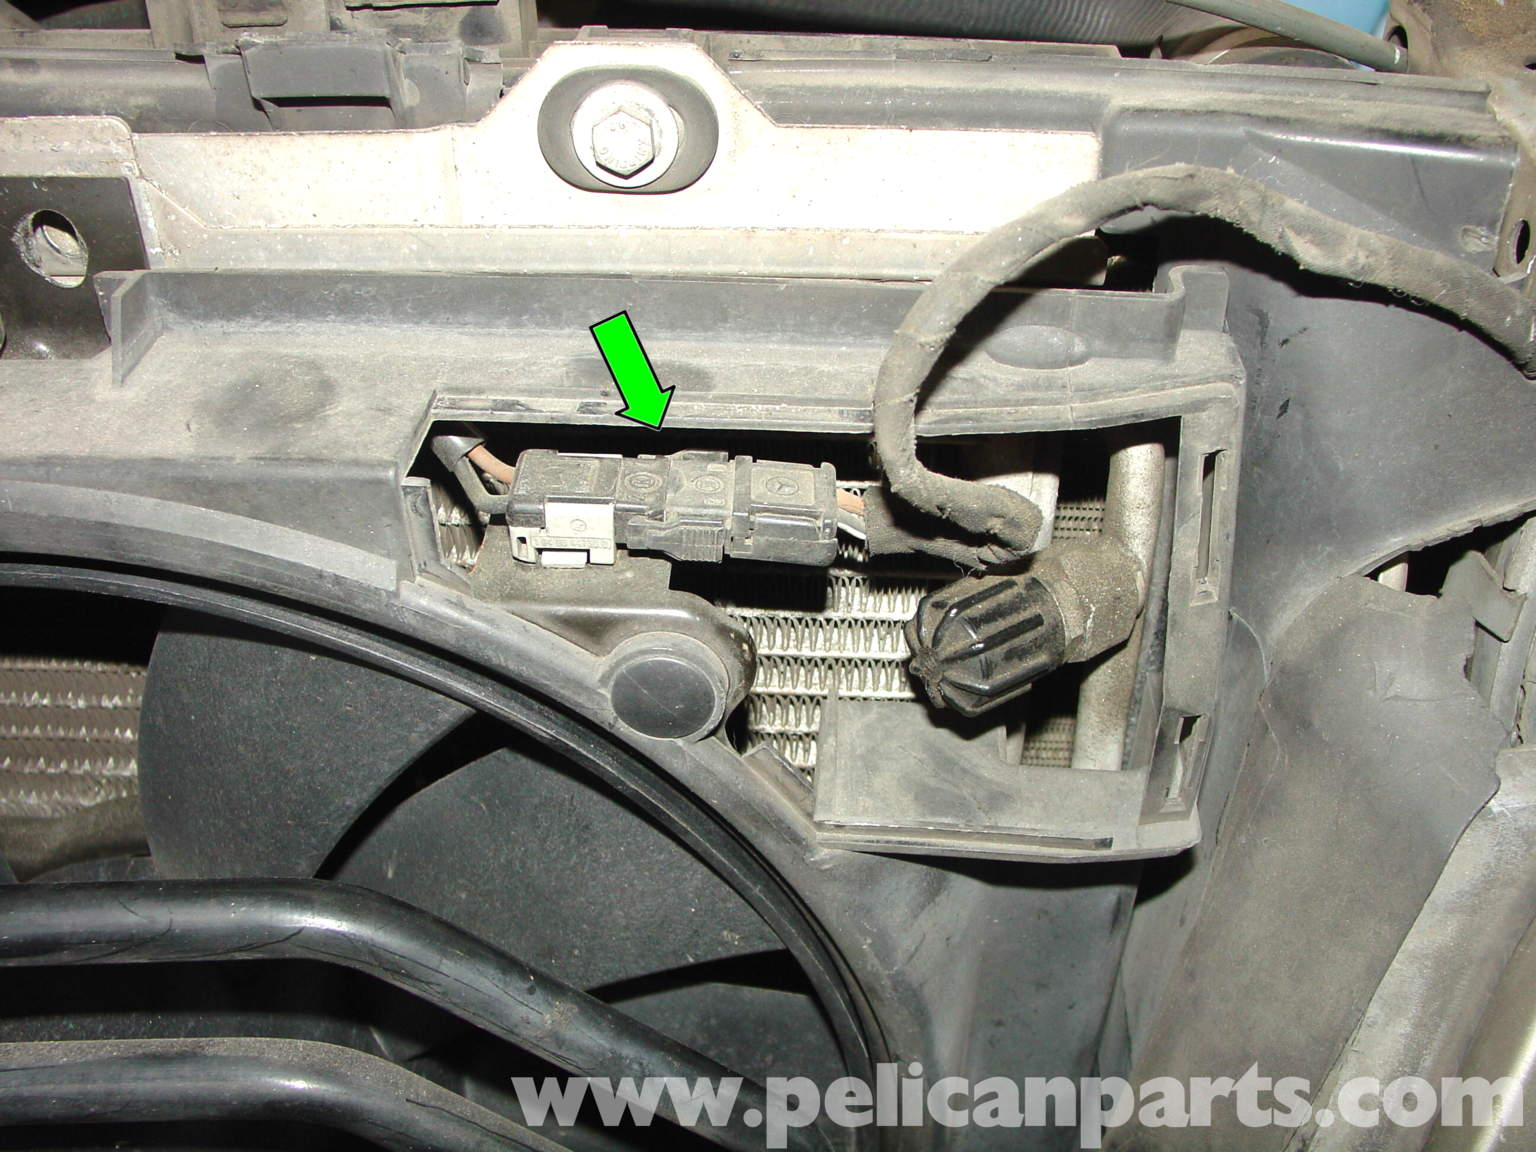 1999 Saab 9 3 Vacuum Line Diagram likewise 2013 Ford F 150 Speaker Wiring Diagram additionally Question Sur Vanne N75 T6214 25 likewise Chevy 5 7 Spider Injector Wiring Diagram further 1998 Volvo S70 Vacuum Hose Diagram. on saab brake system diagram